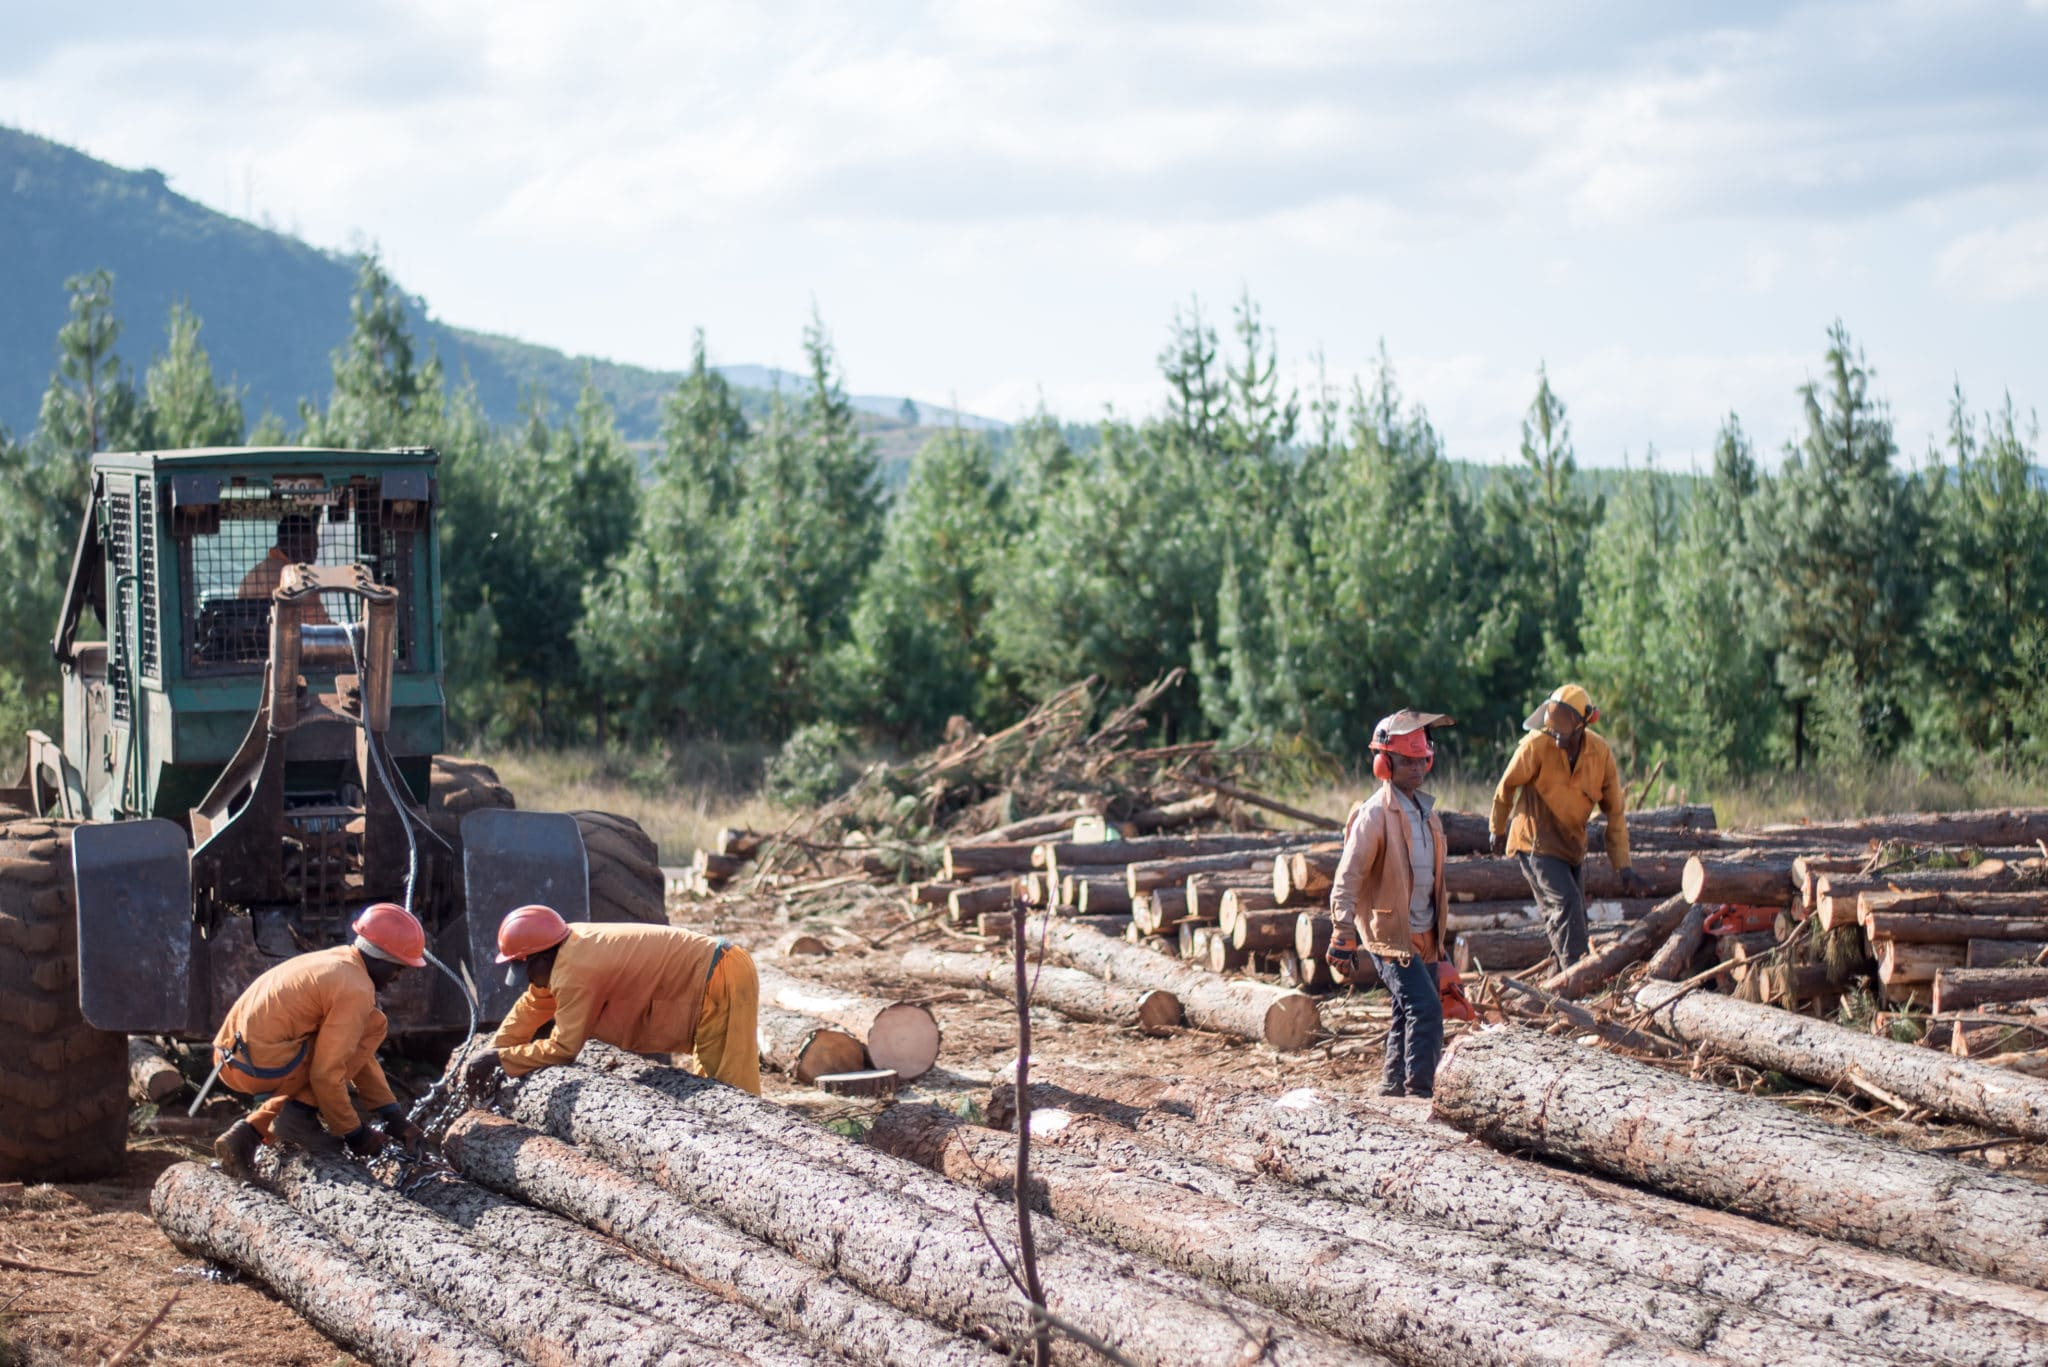 South African people in forestry work